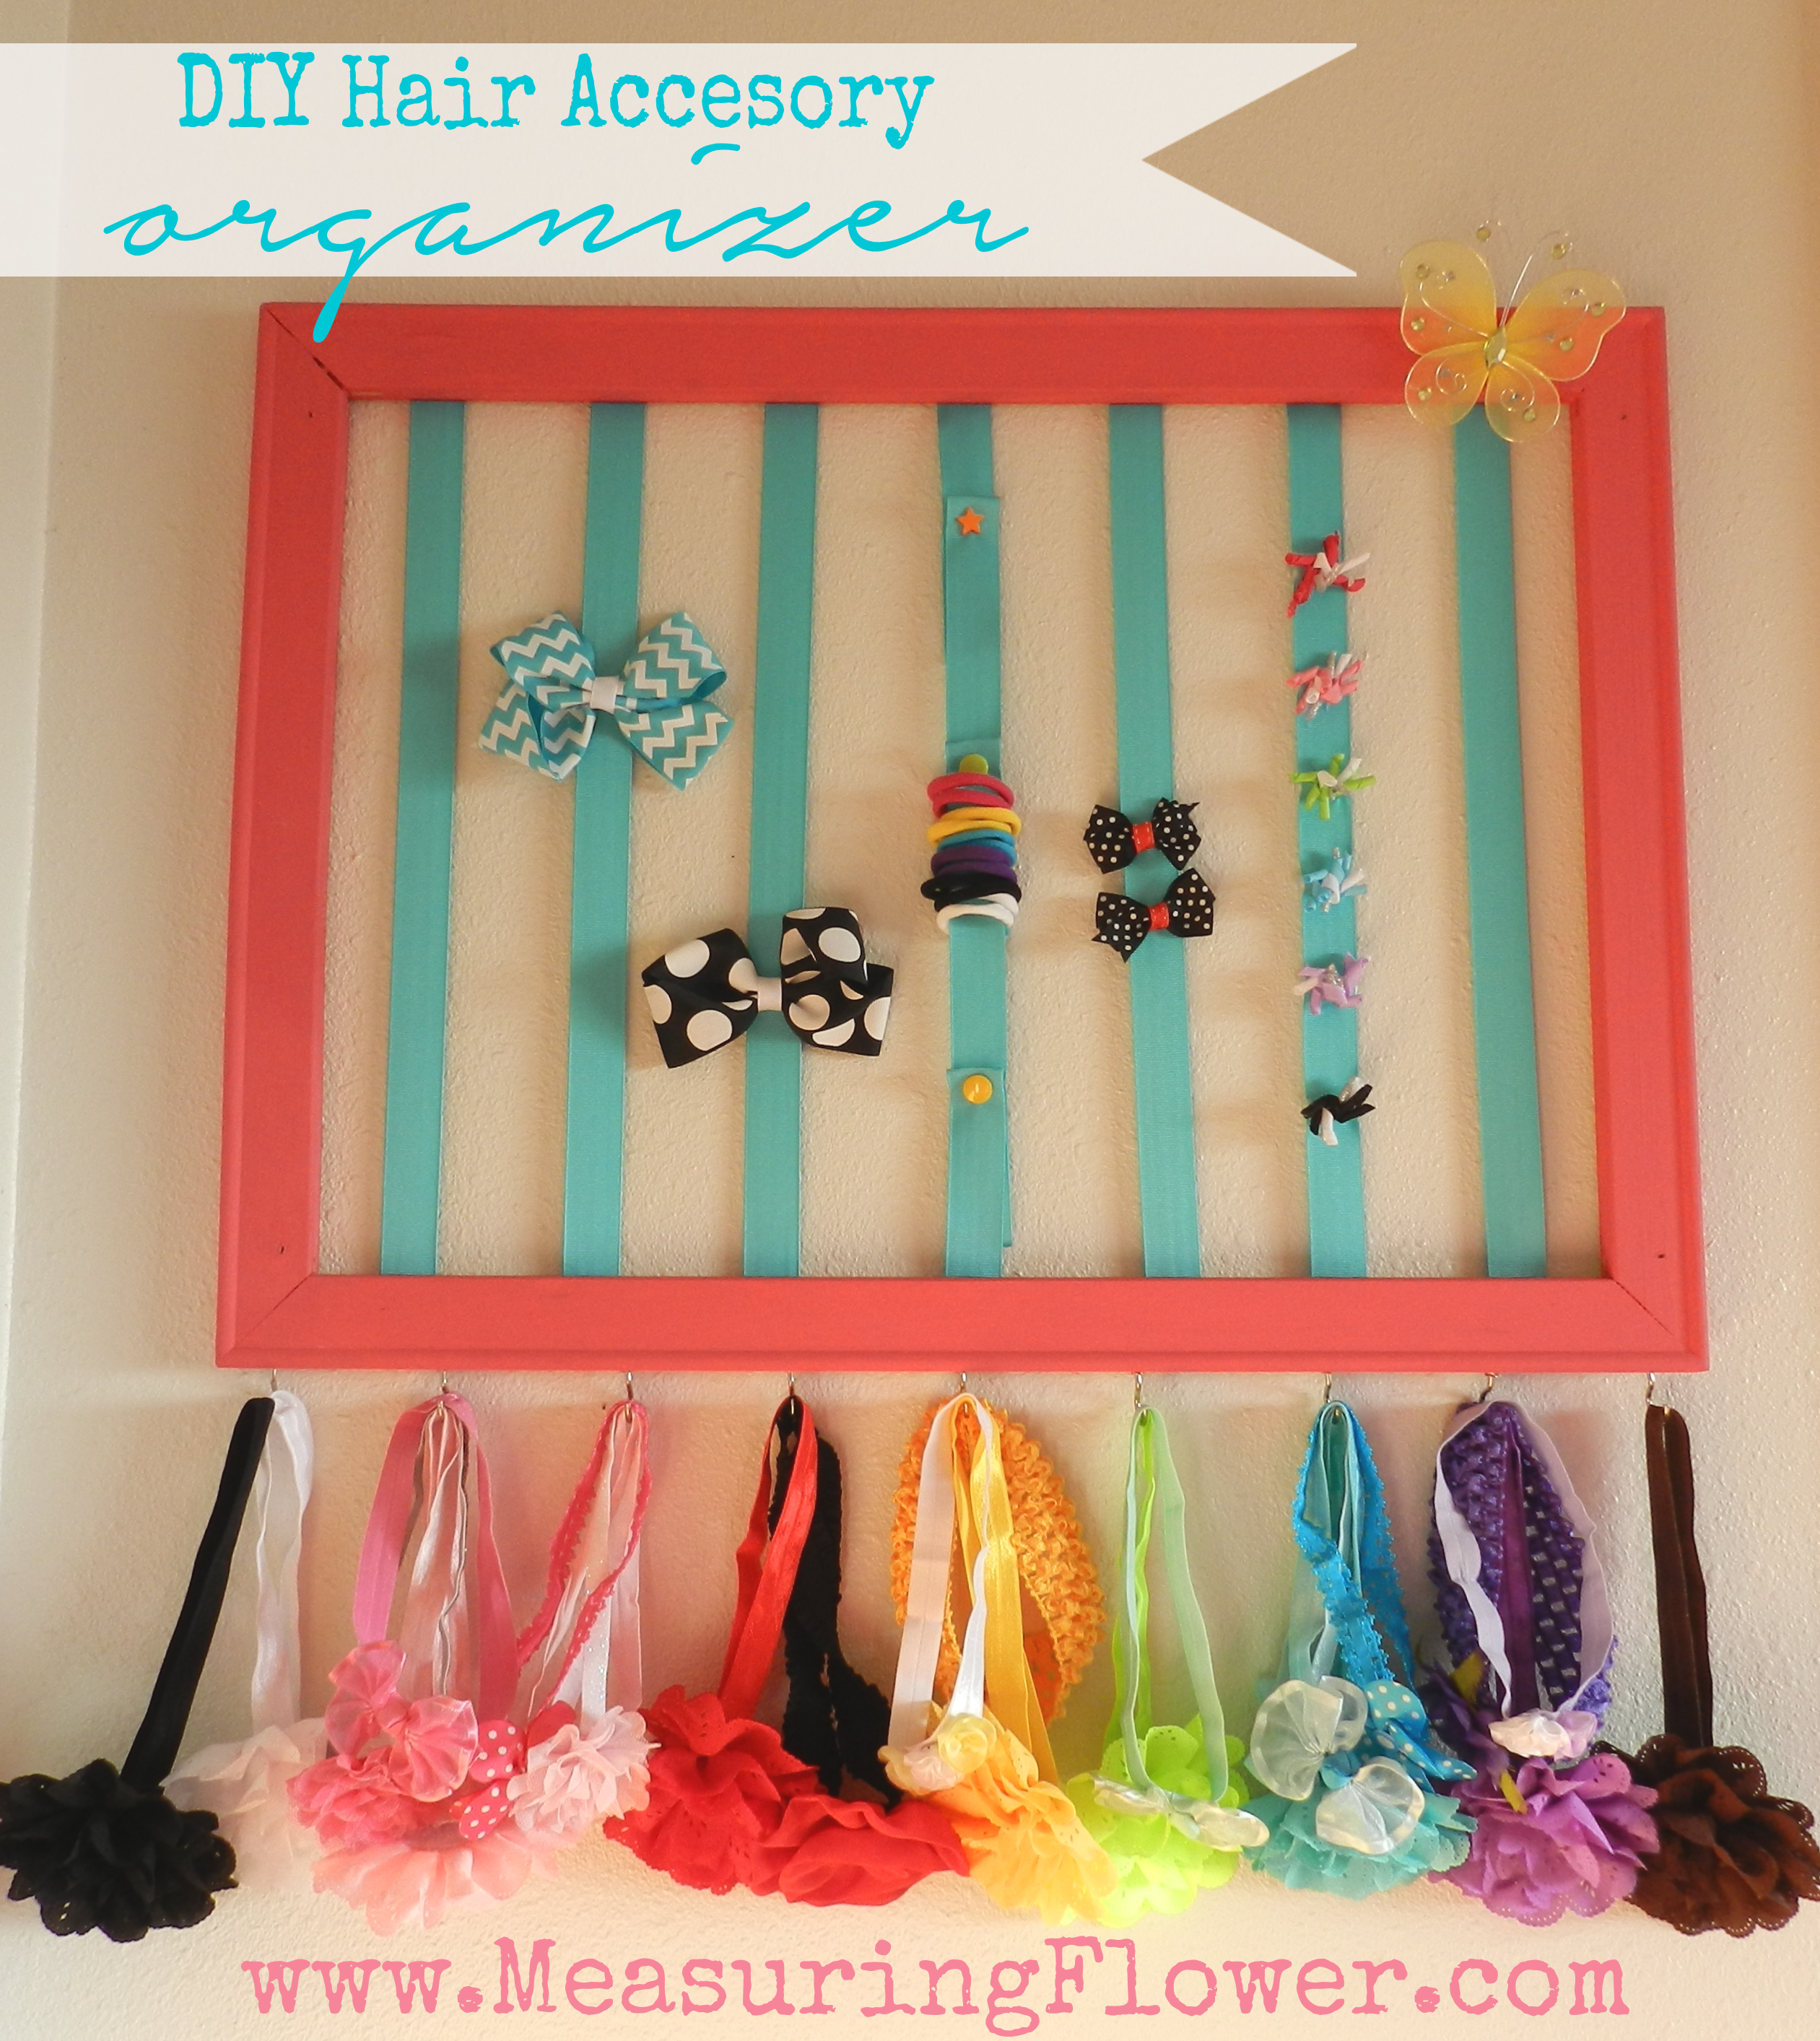 DIY Hair Accessory Organizer--MeasuringFlower.com